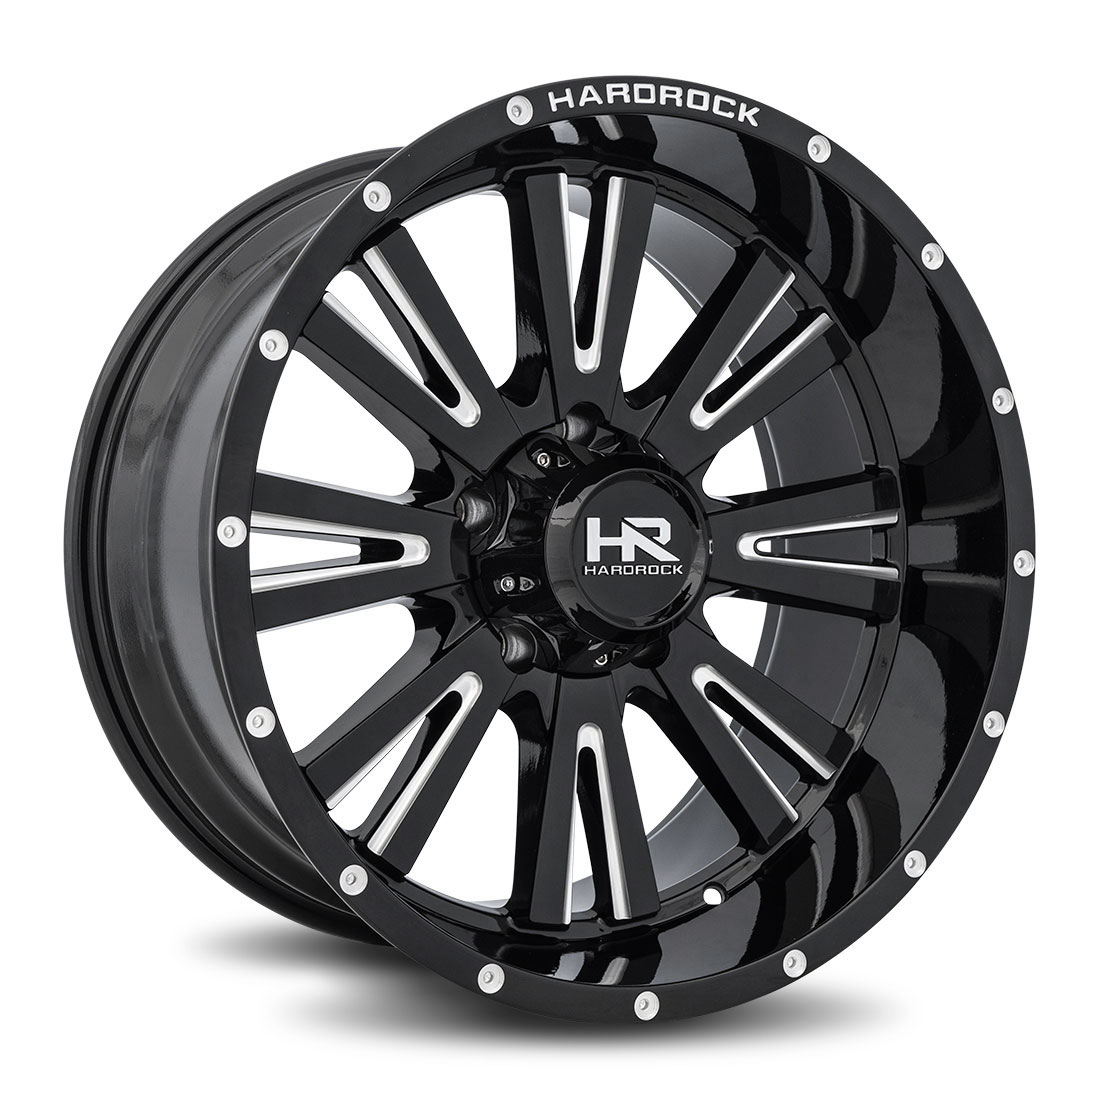 Hardrock Offroad Wheels H503 Spine-Xposed - Gloss Black Milled - 20x10